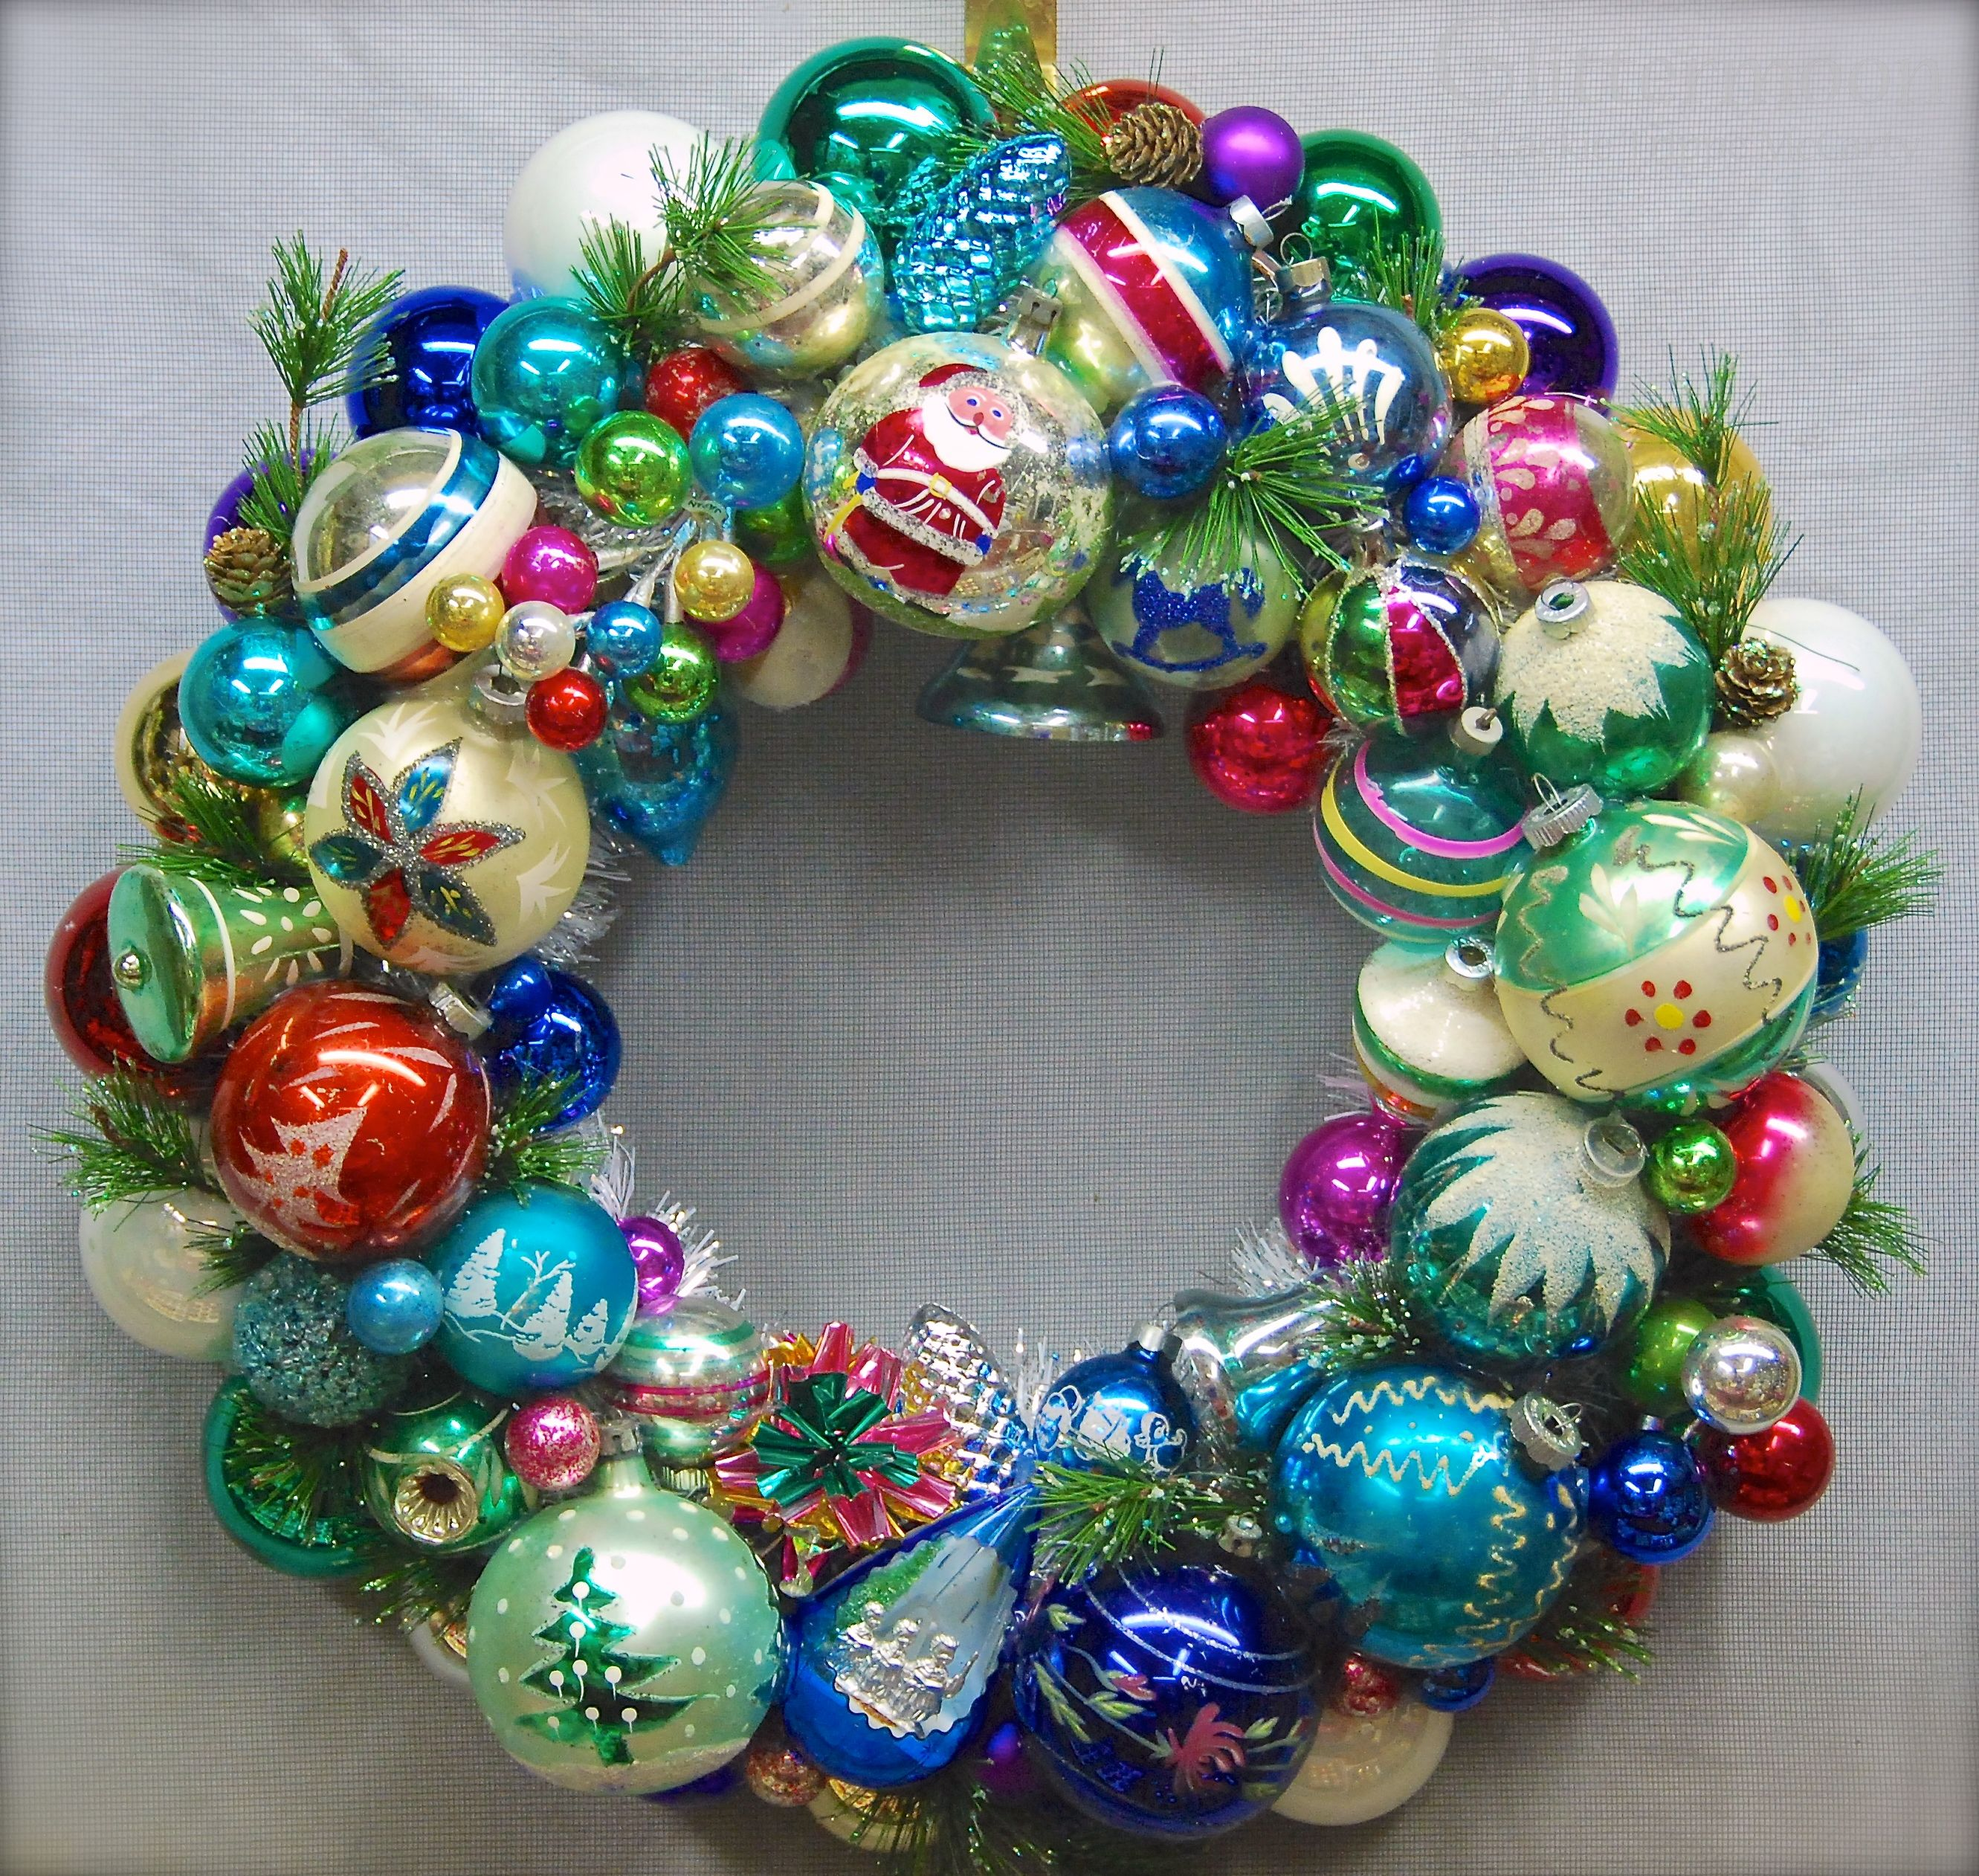 Old Fashioned Christmas Decorations old-fashioned-christmas-wreath-c2a9glittermoon-productions-llc